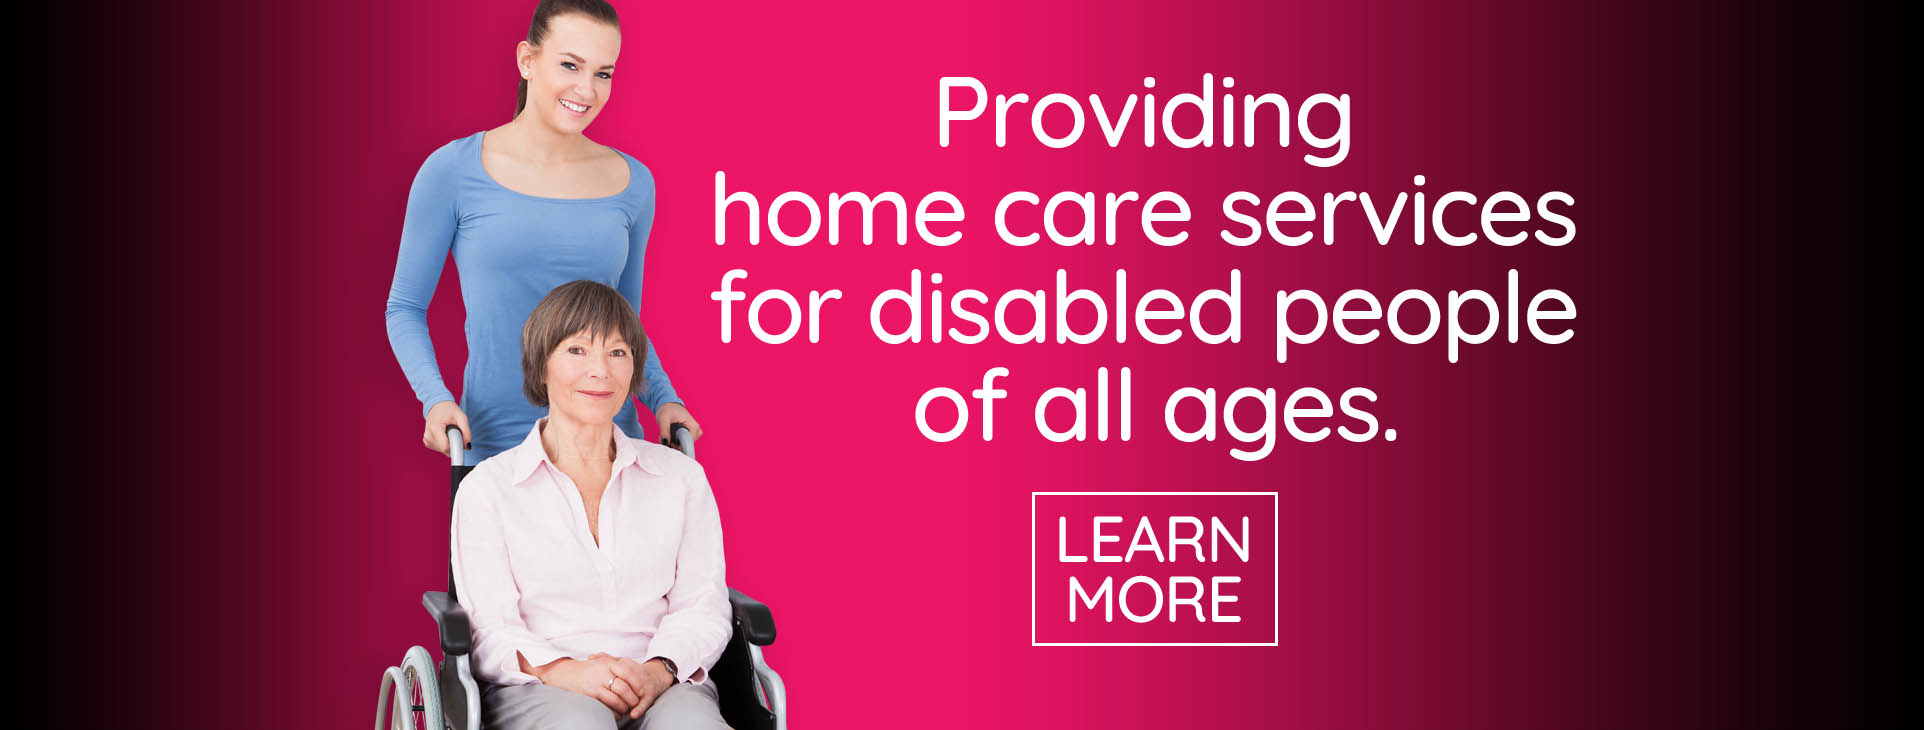 Care Services for the disabled and elderly